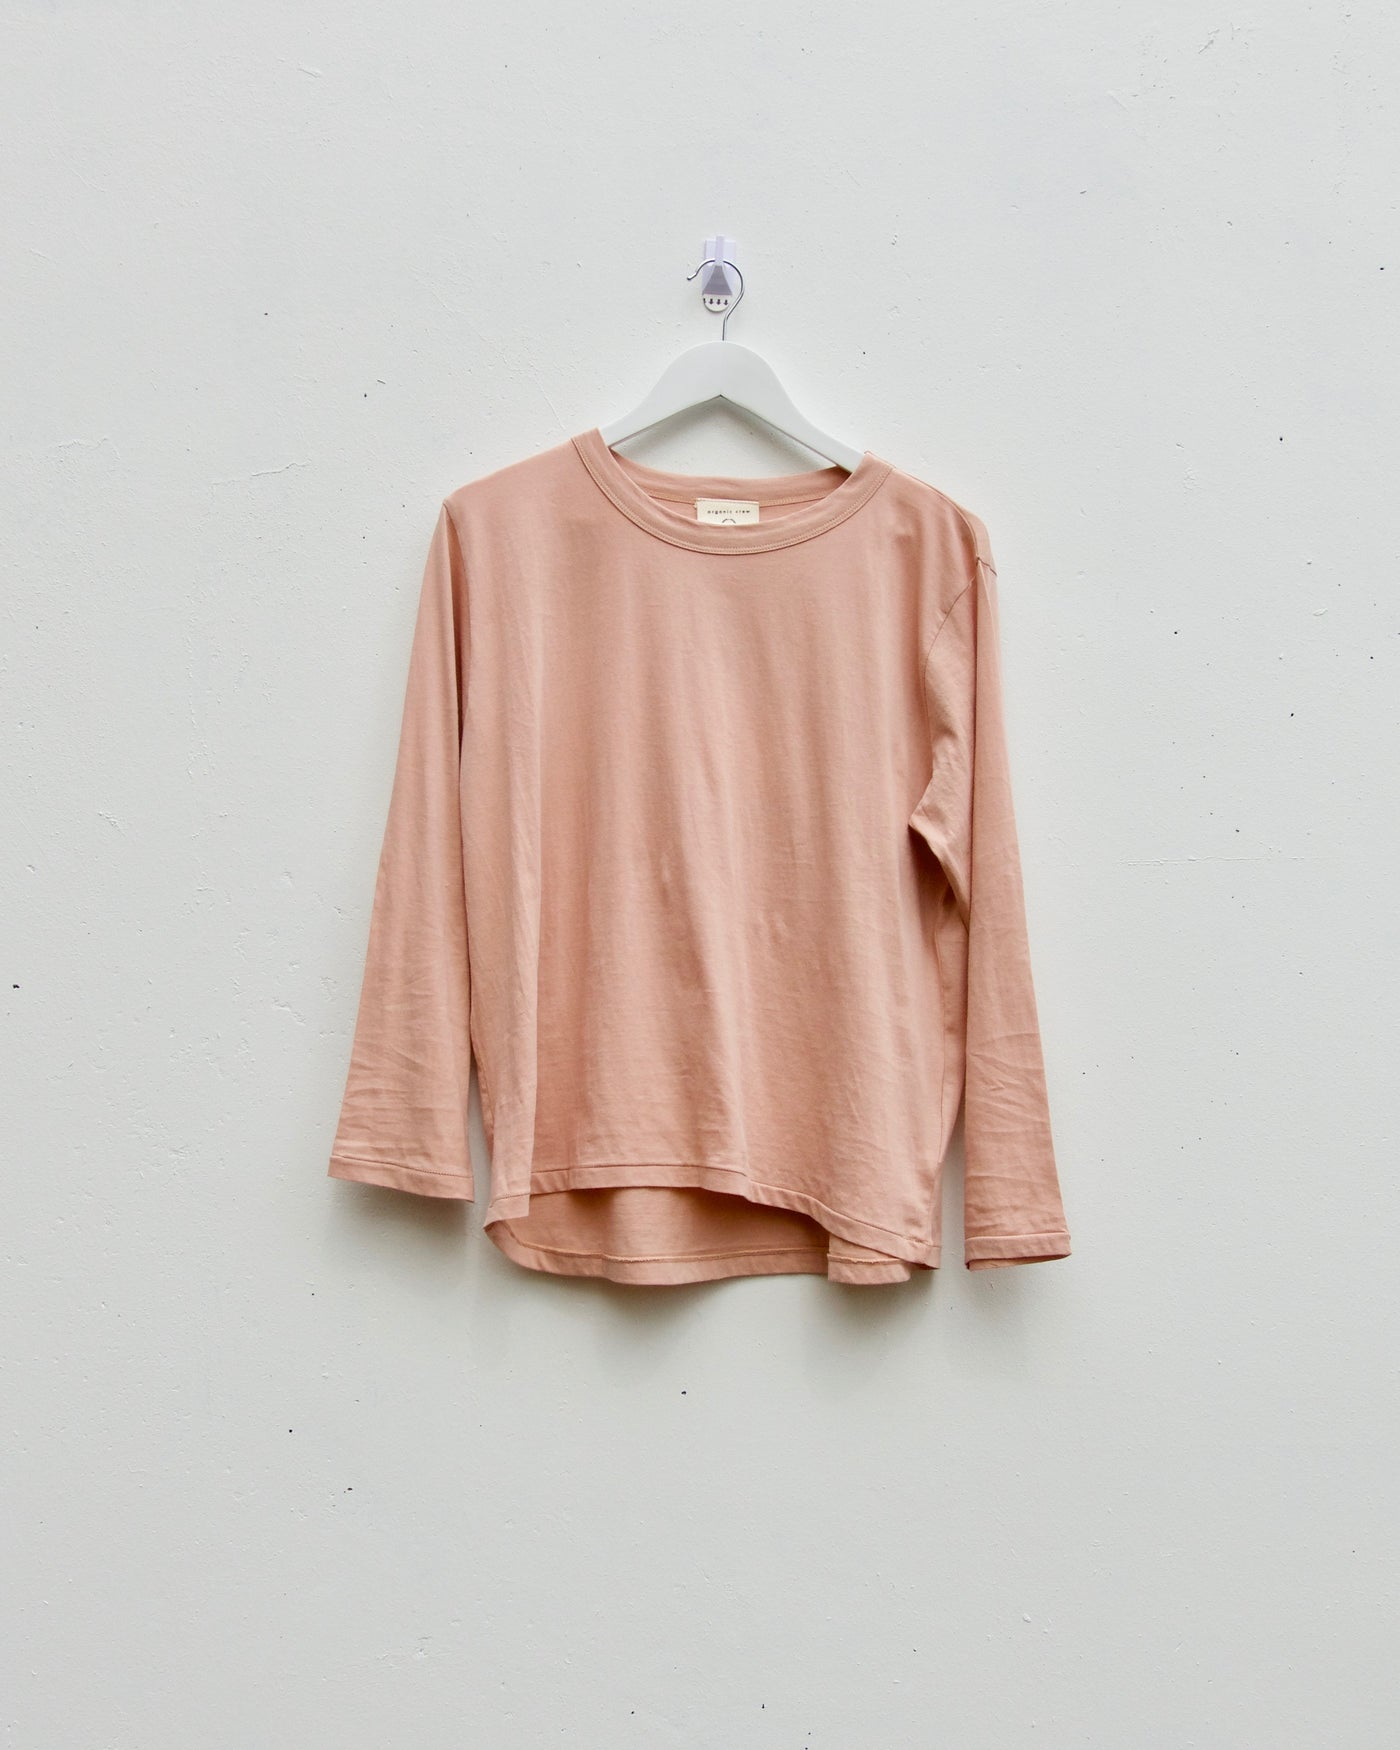 Flinders Boxy Tee - Dusty Pink - LAST ONE (size 2)!